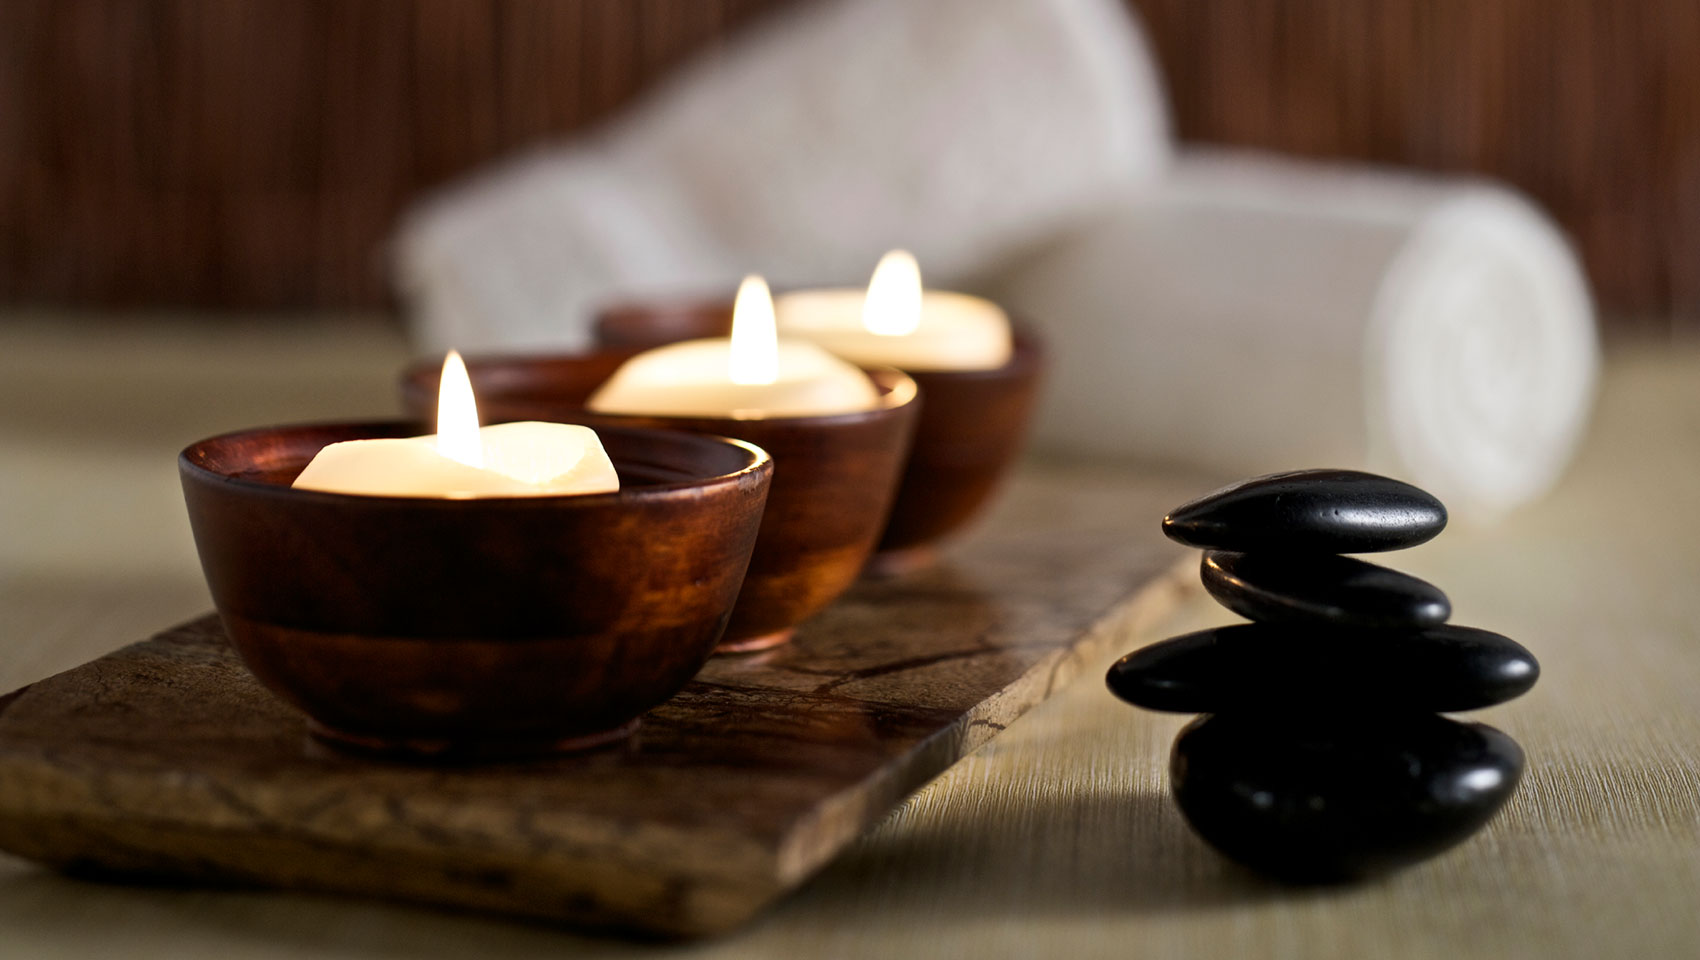 Hot Massage Stones, Burning candle in teakwood with towels rolled in the background